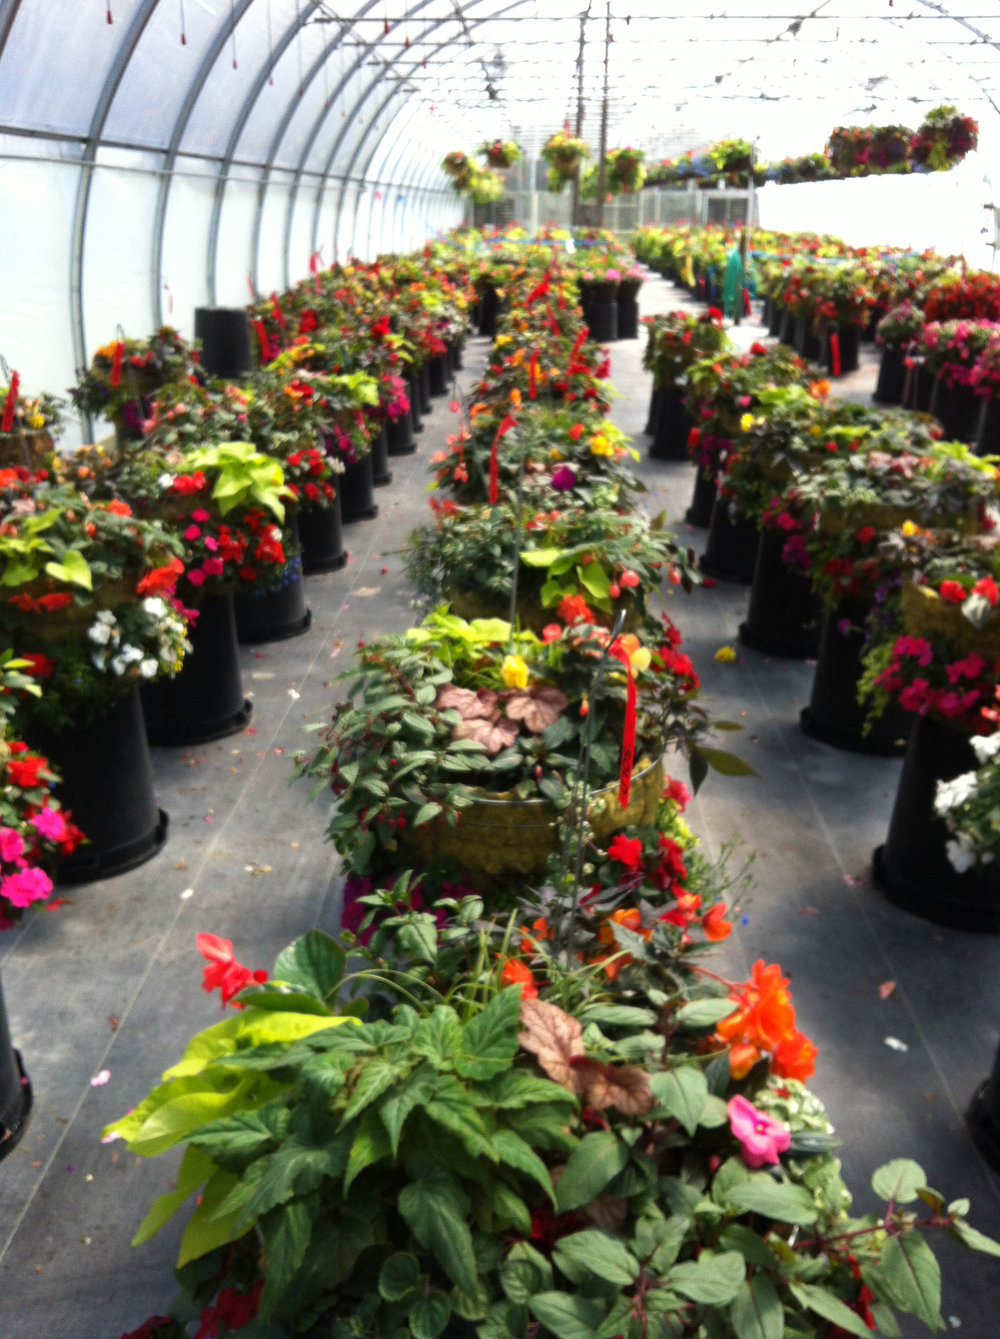 Flower Farm_Greenhouse1.jpg